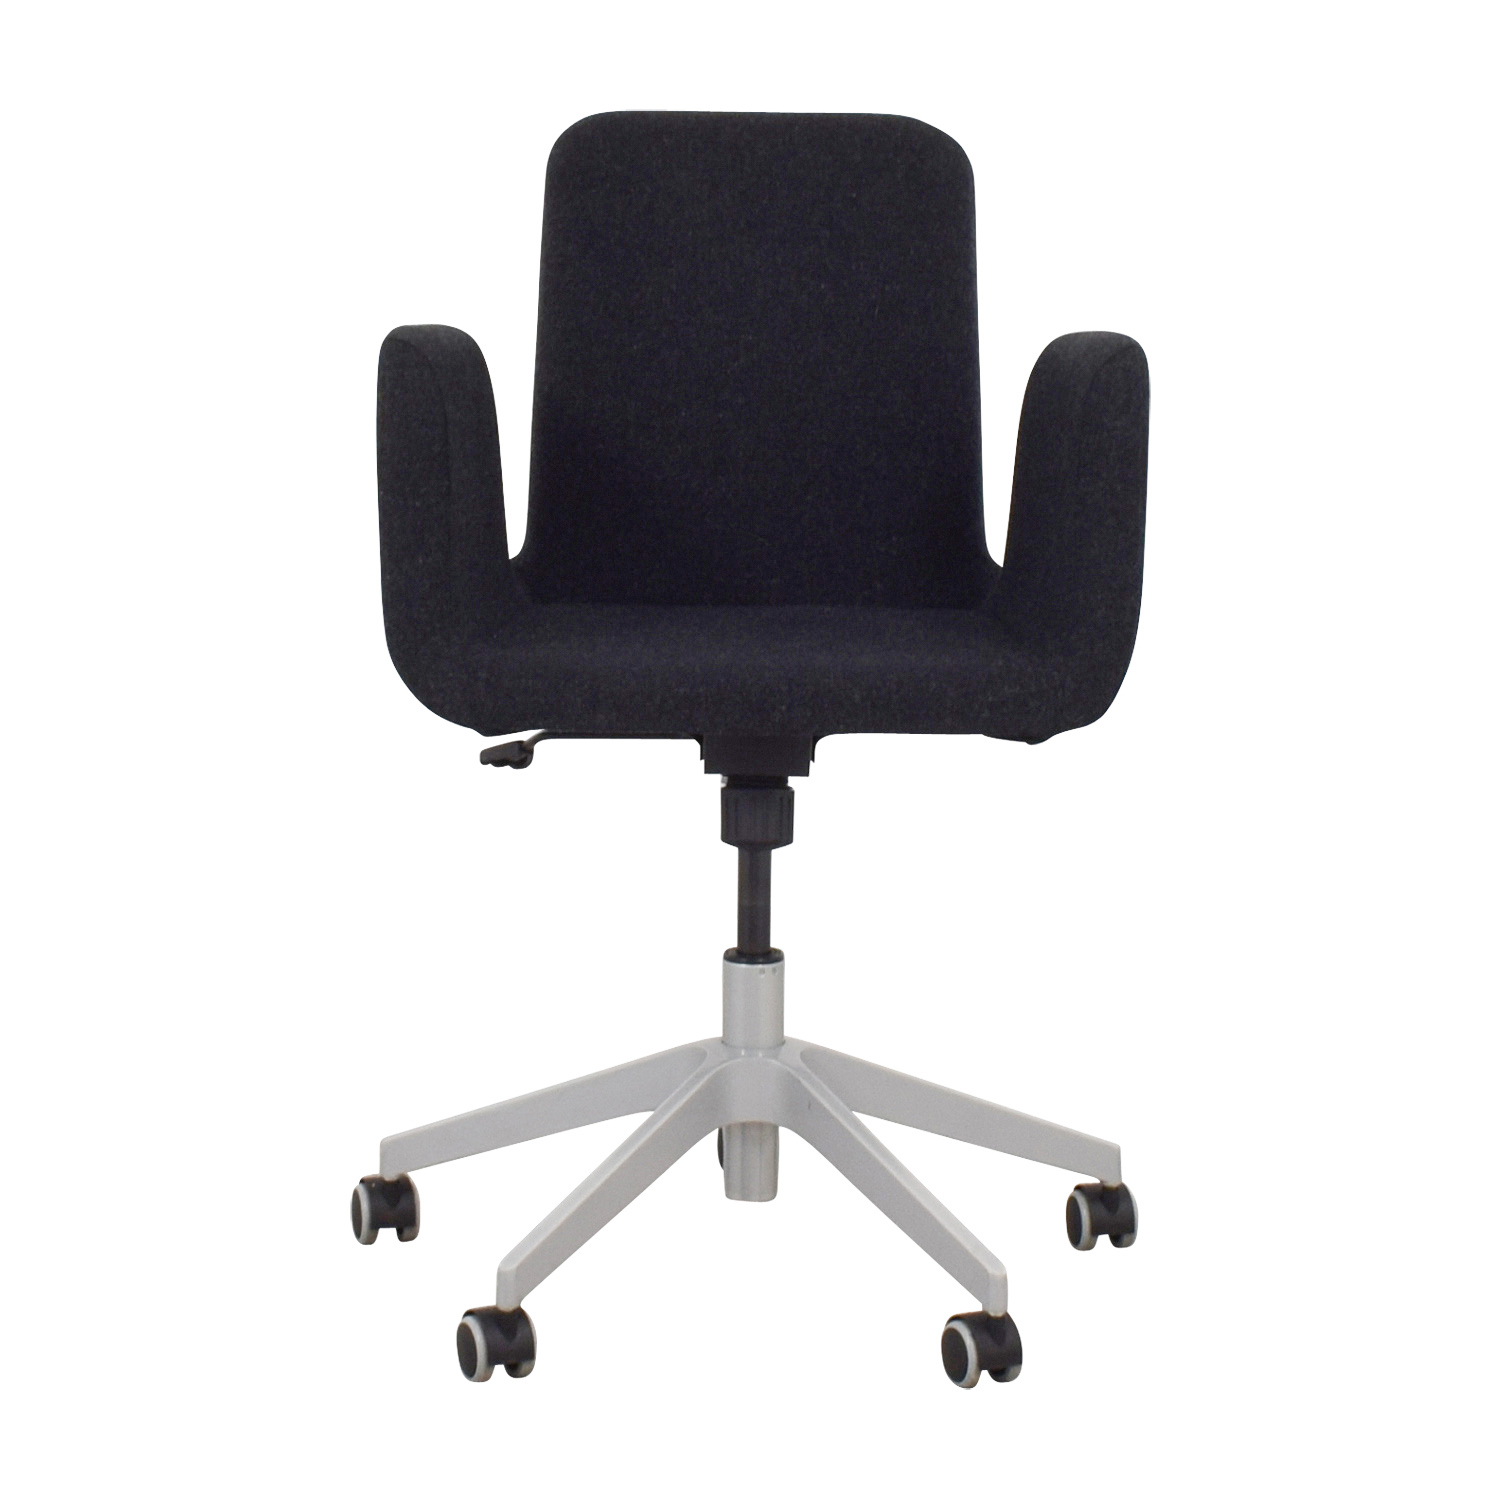 IKEA IKEA Black Desk Chair